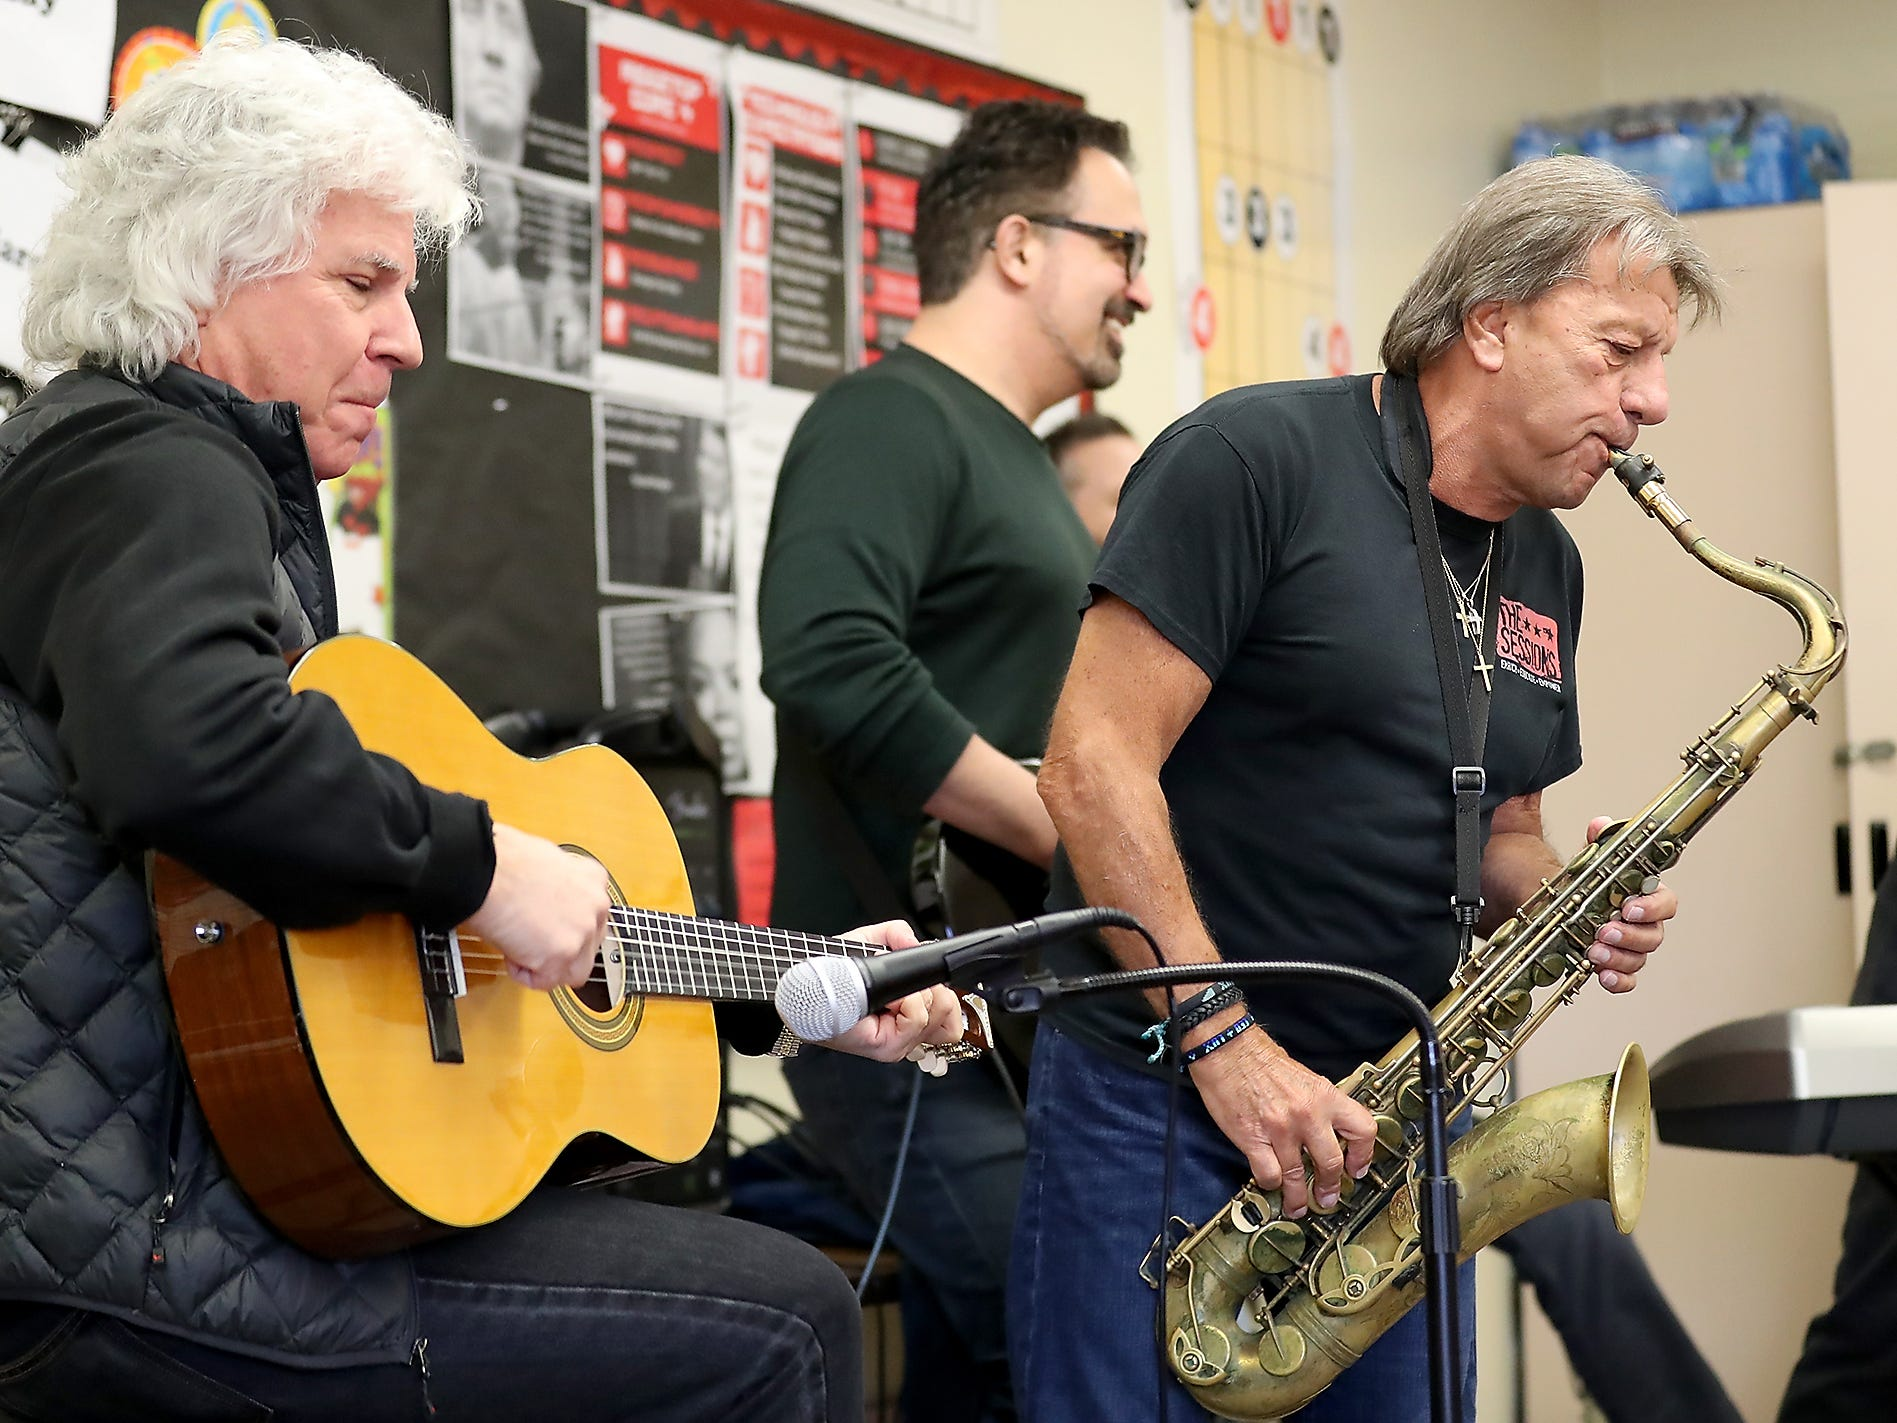 The Lords of 52nd Street's Russell Javors, left, and Richie Cannata perform with their band during a visit to Ridgetop Middle School in Silverdale on Friday, March 8, 2019.